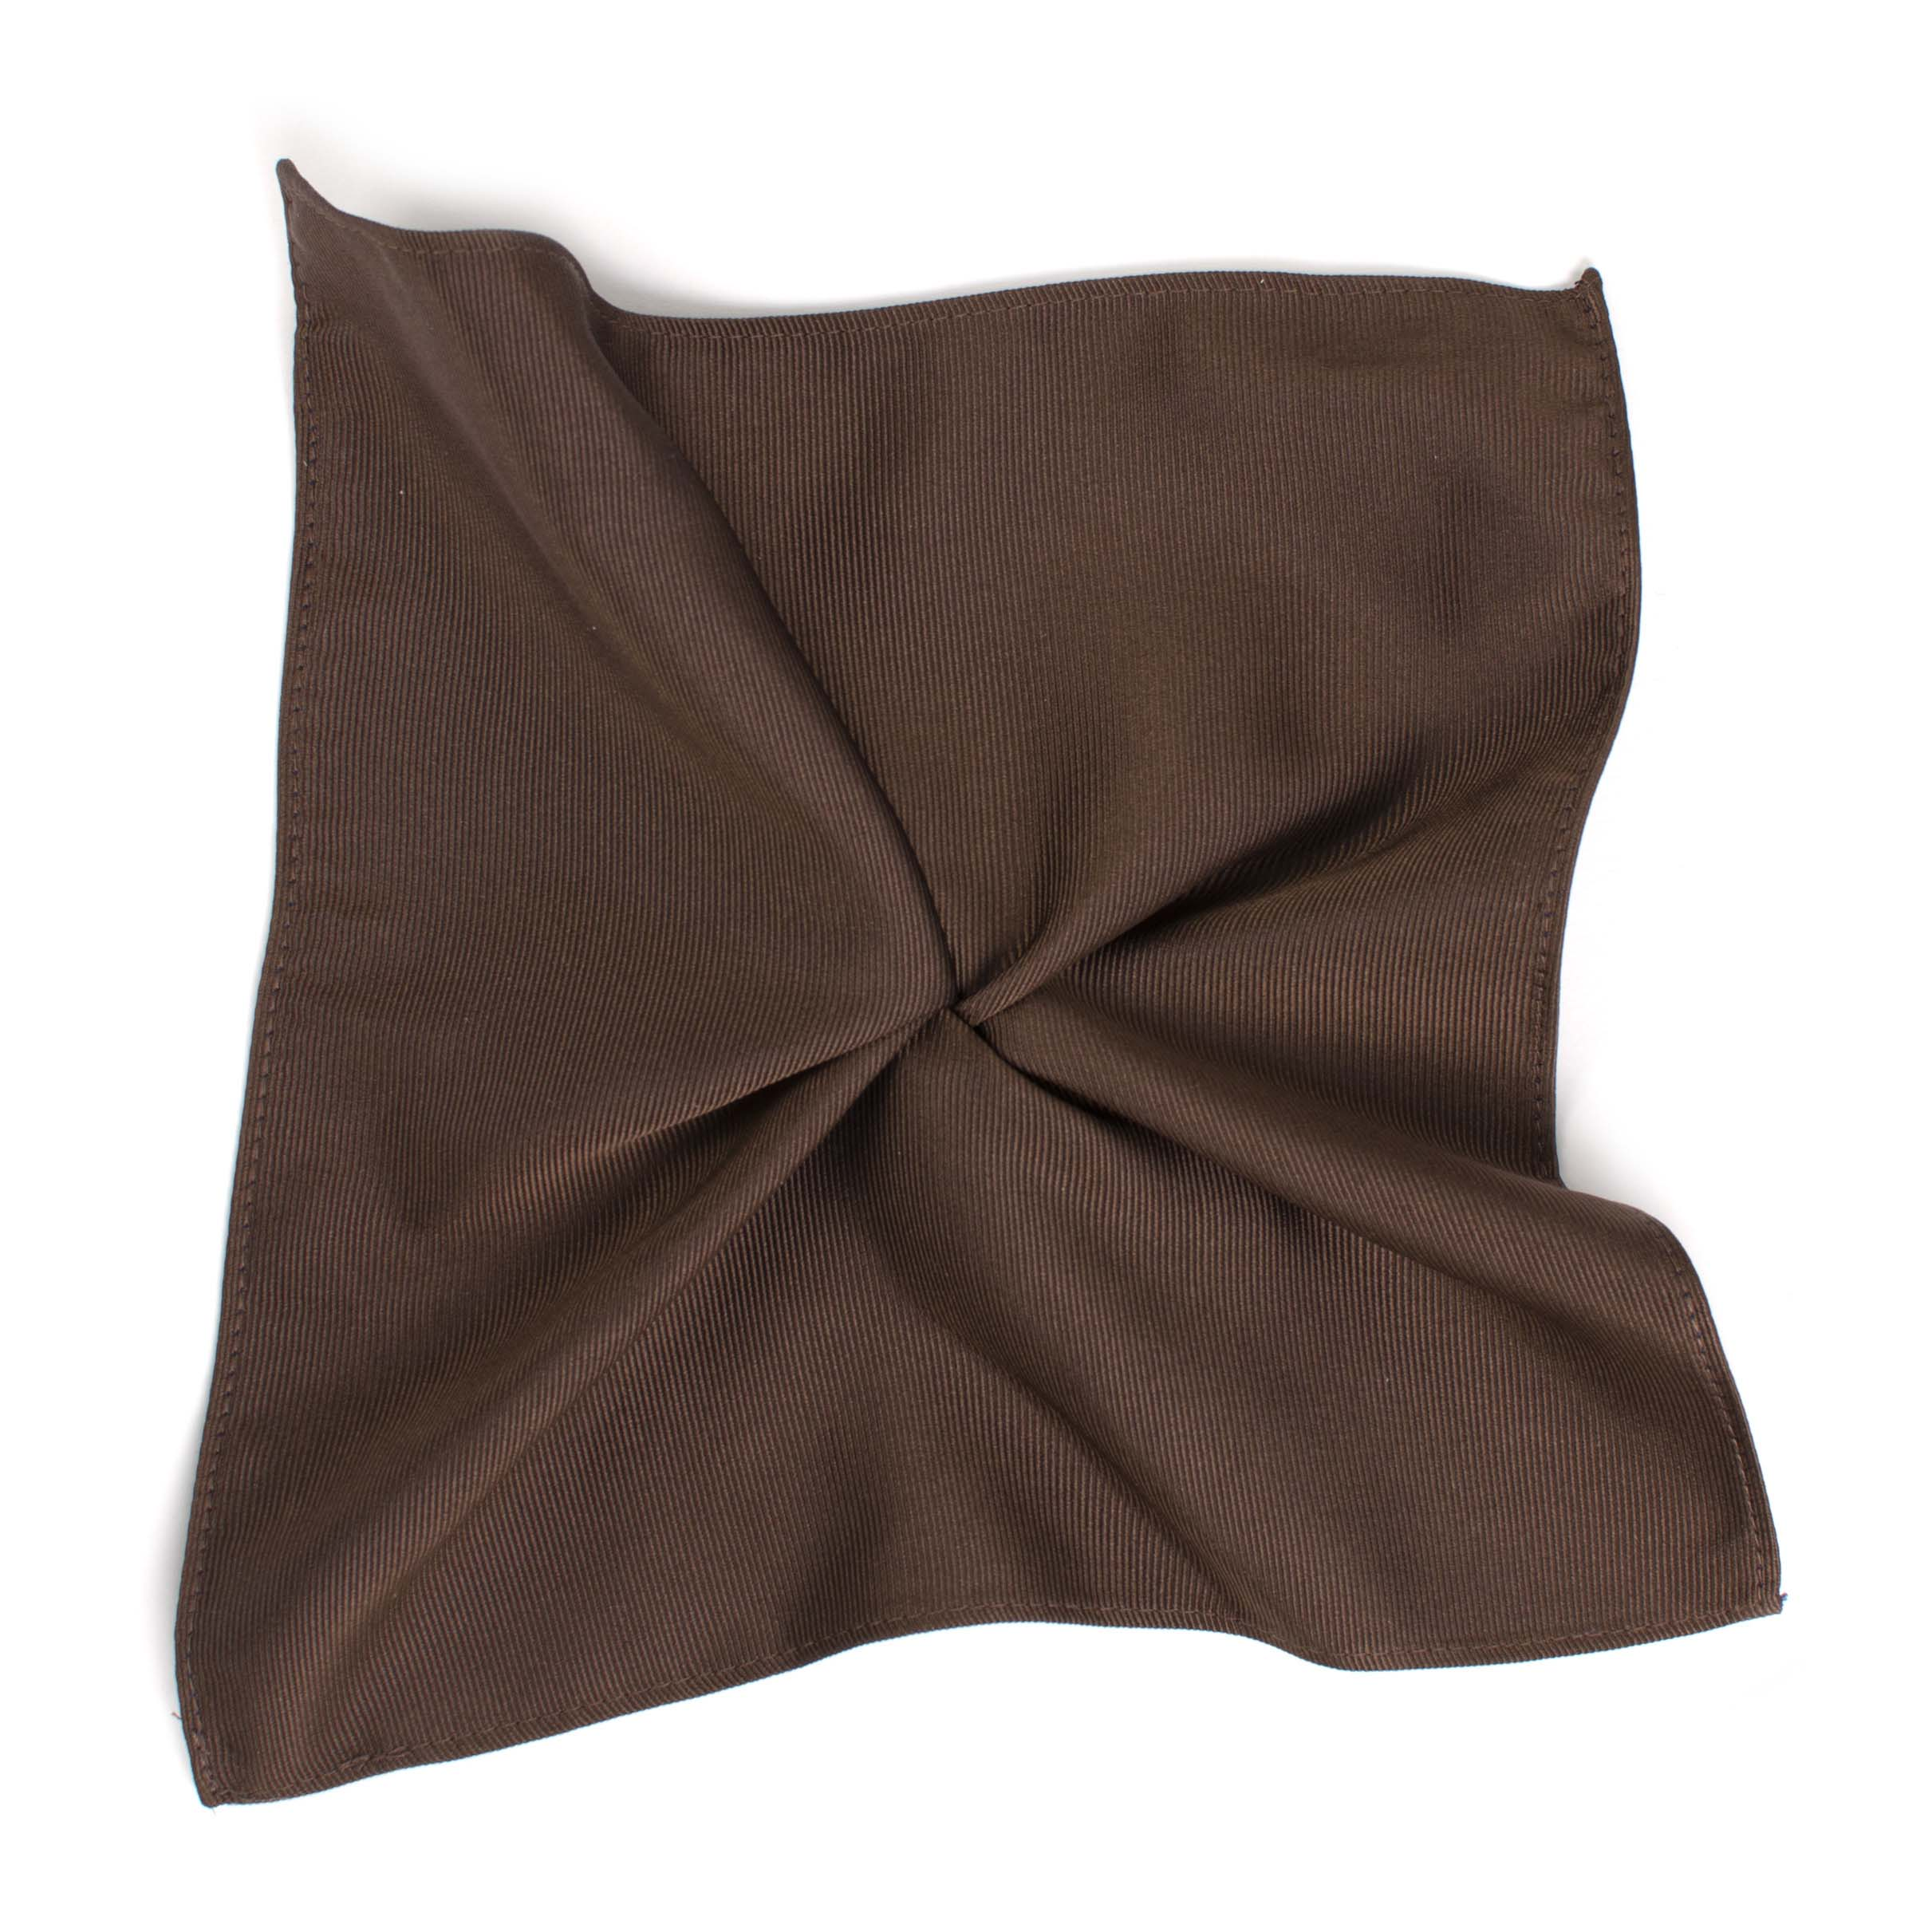 Classic brown ribbed pocket square